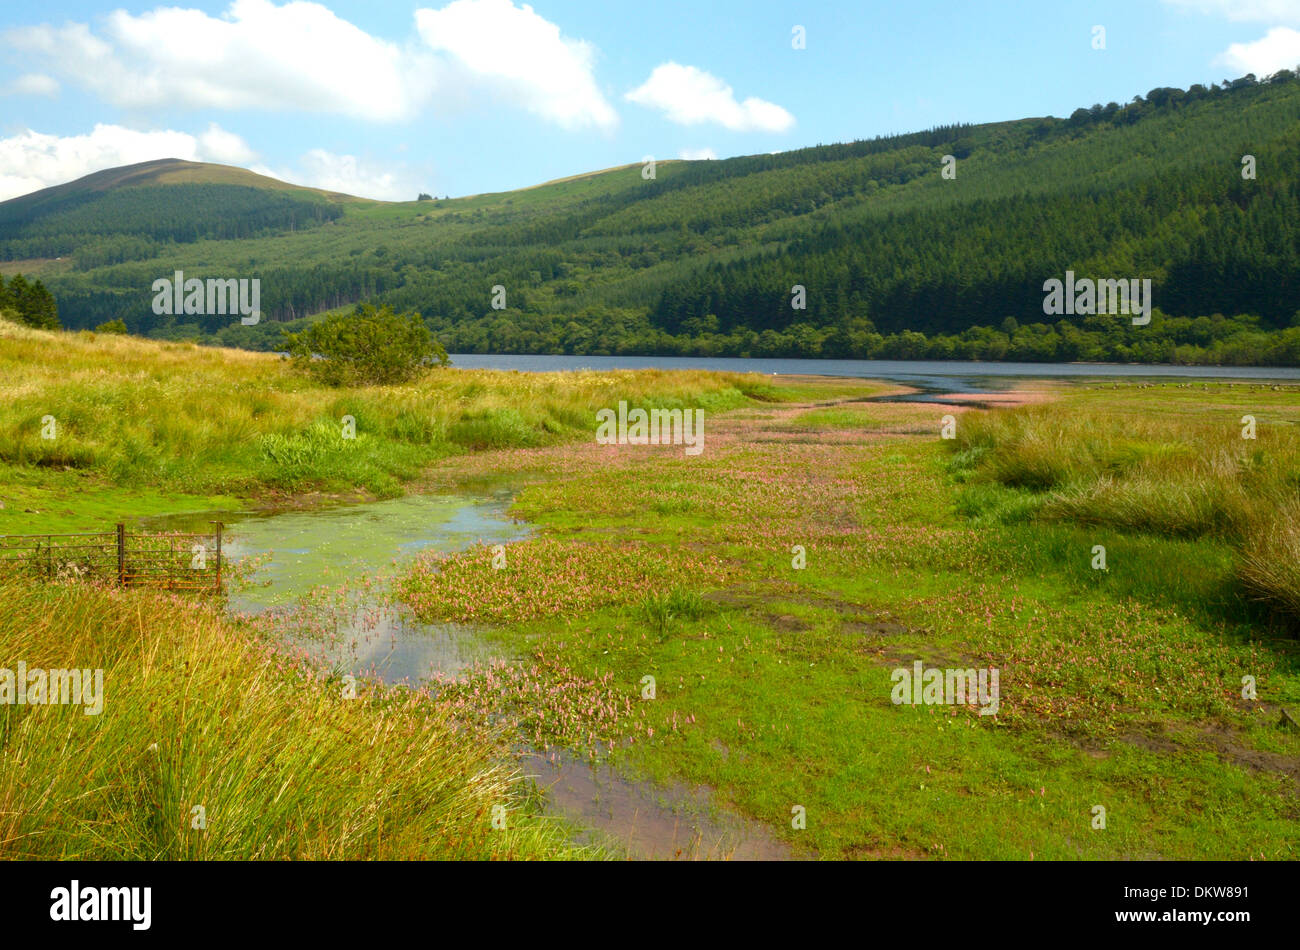 The Caerfanell Stream at Entry into Talybont reservoir - Stock Image